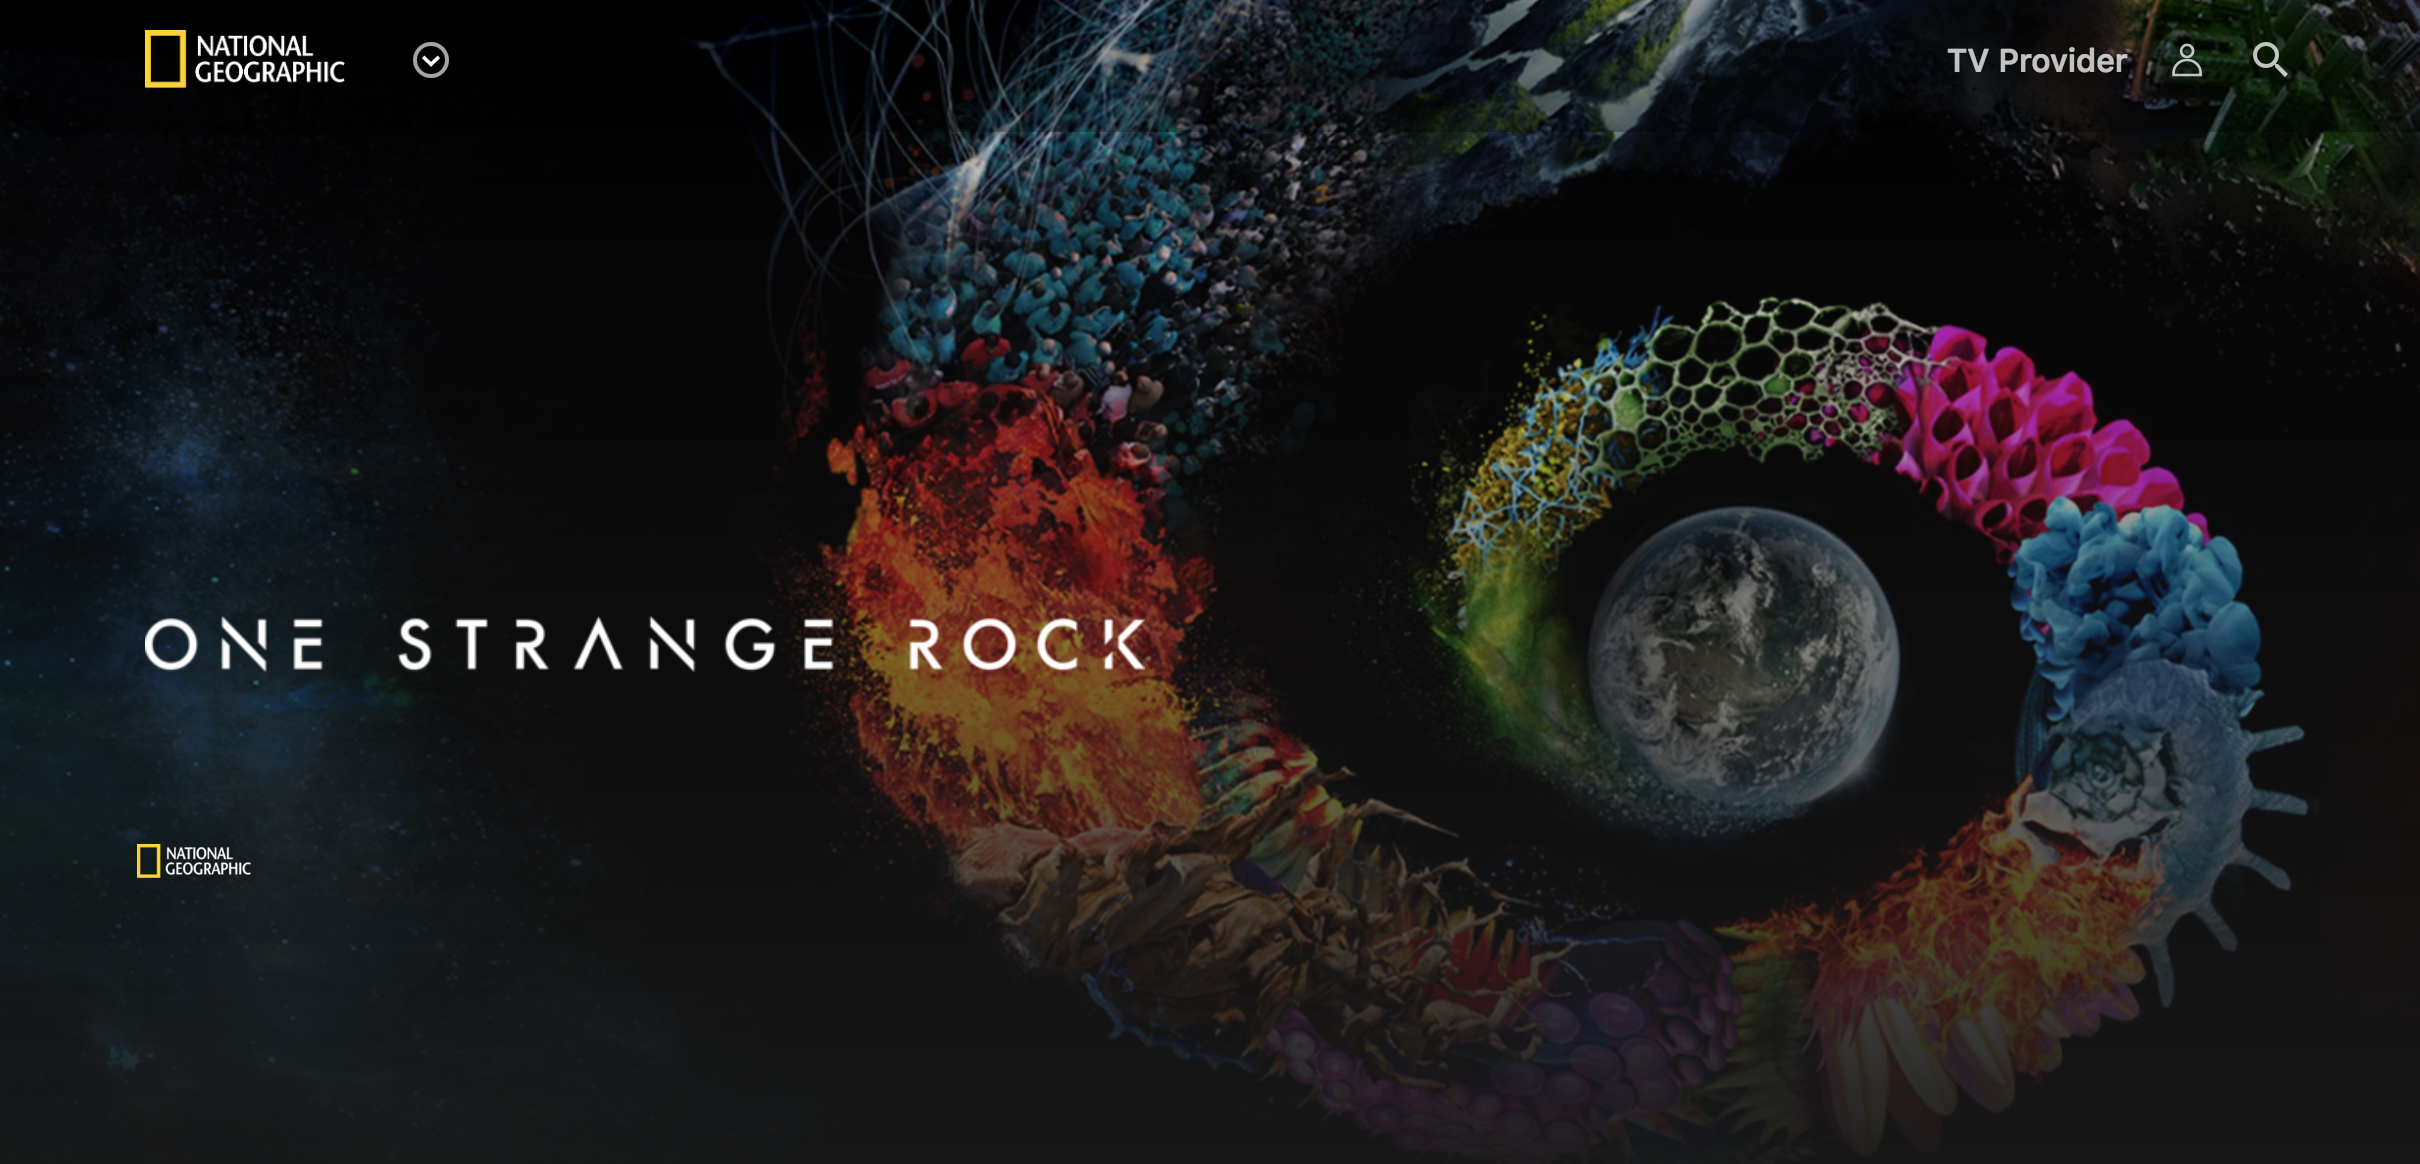 https://www.nationalgeographic.com/tv/one-strange-rock/